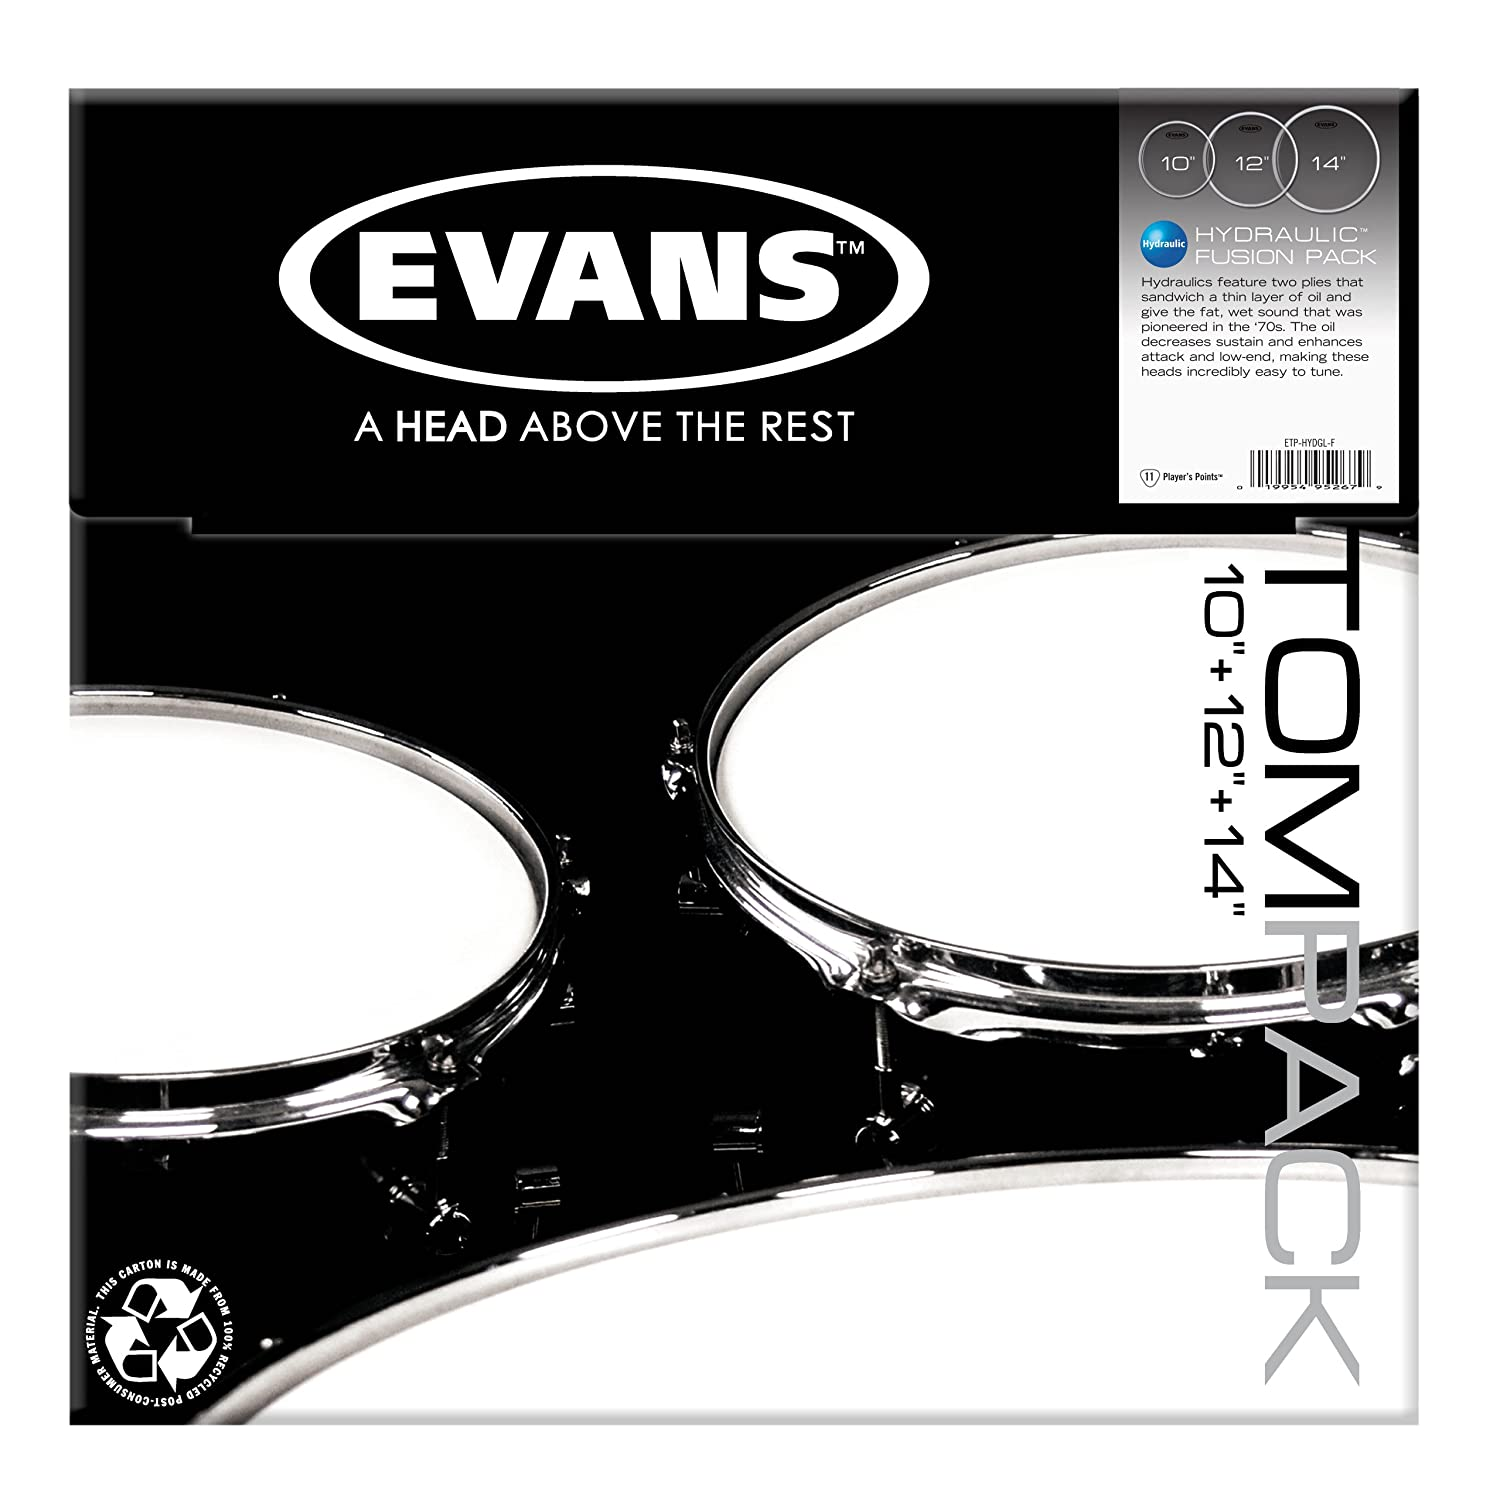 Evans Glass Tompack Fusion us golf country кеды